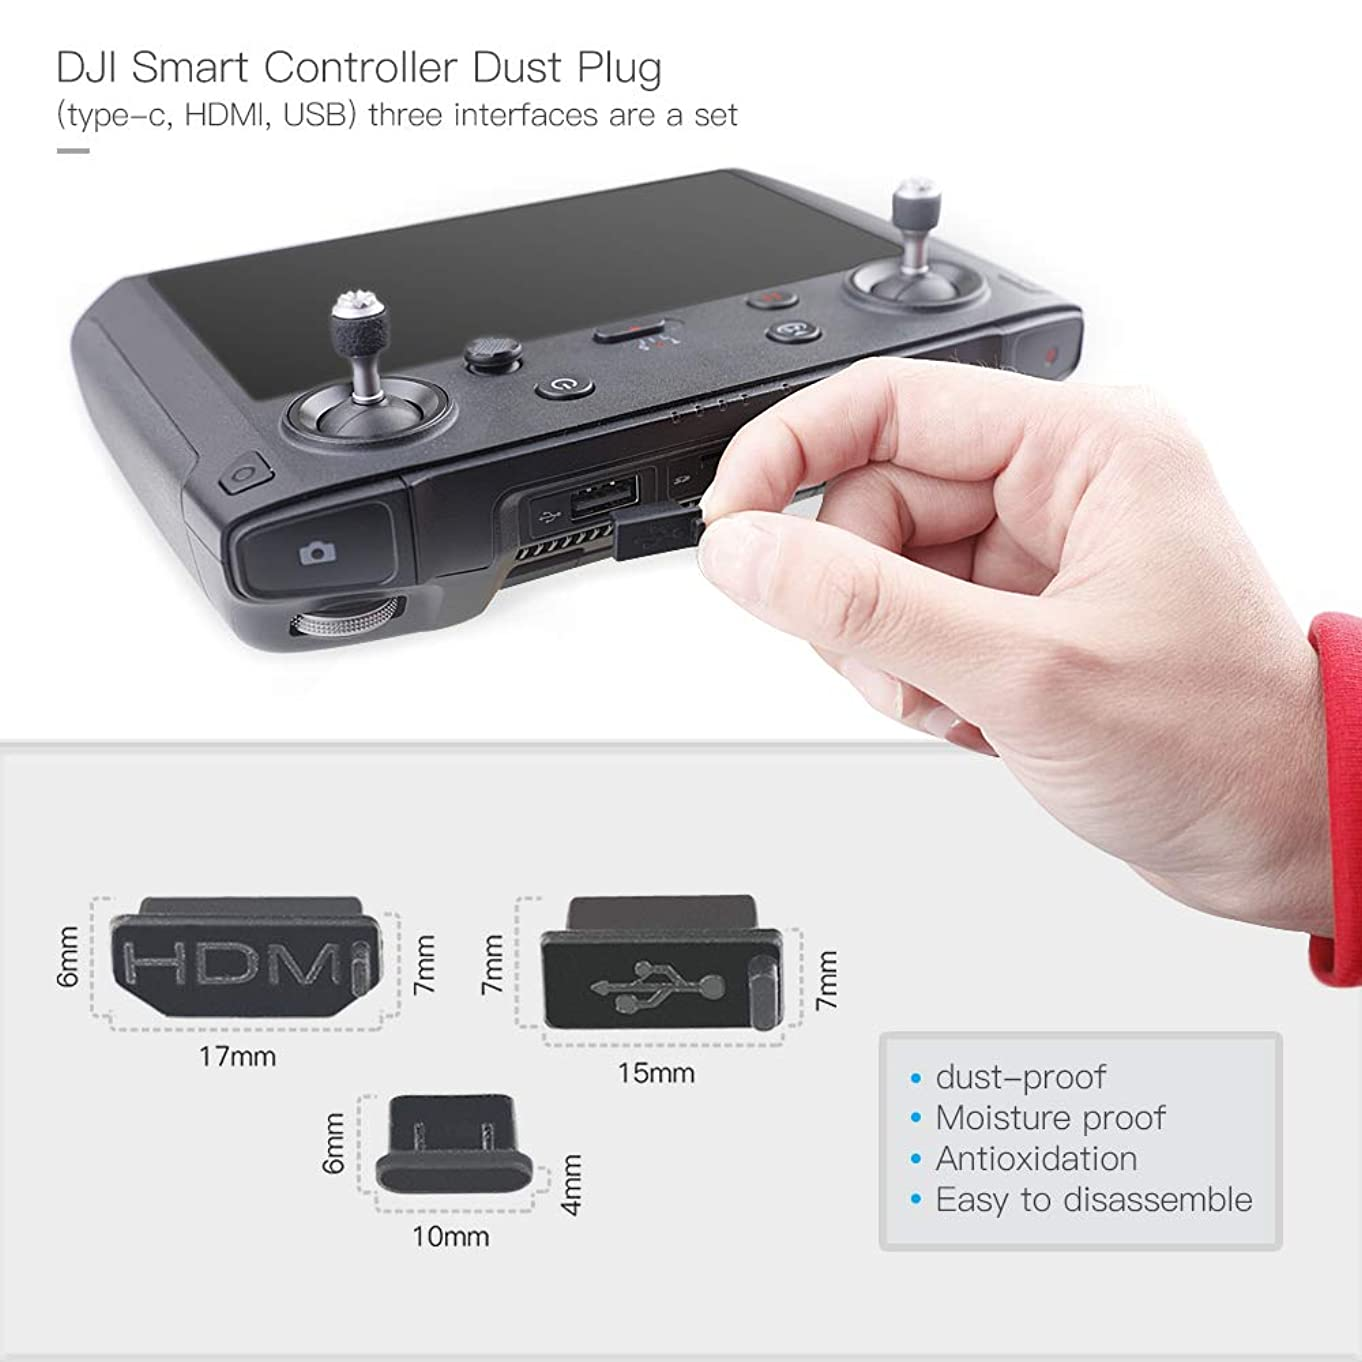 Terminal Water-Resistant Dust Cover Plug Compatible with DJI Mavic 2 Zoom/Pro Enterprise Smart RC Remote Controller Accessory 3pcs